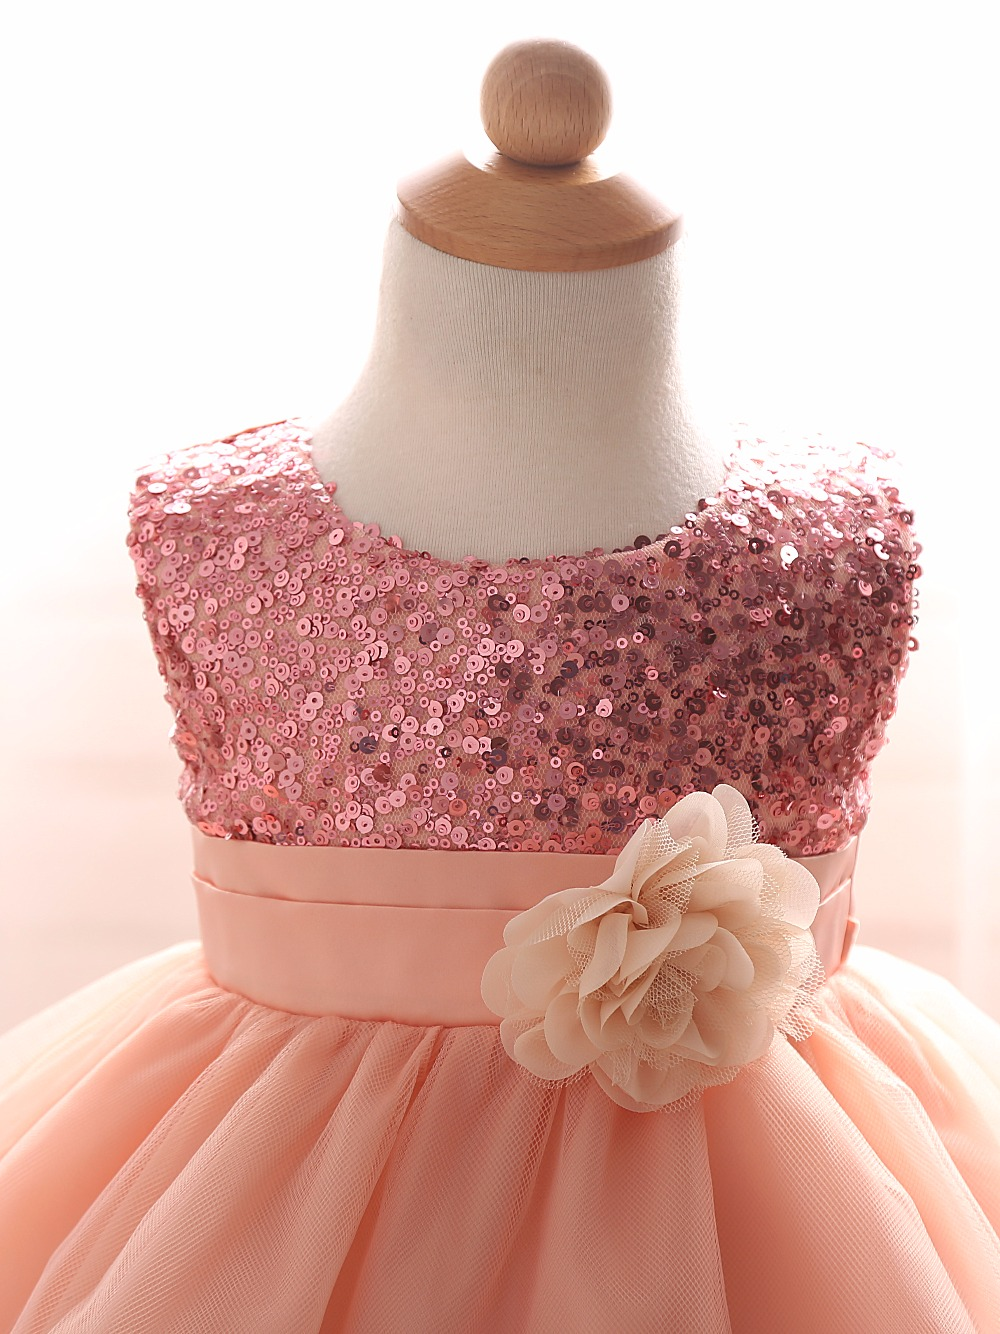 4cec480ce Newborn Baby Girl Dress For Girls Ceremonies Party Wear Flower Ribbon Bow  Kids Dresses Sequined Formal Dress For Toddler 0-2Yrs